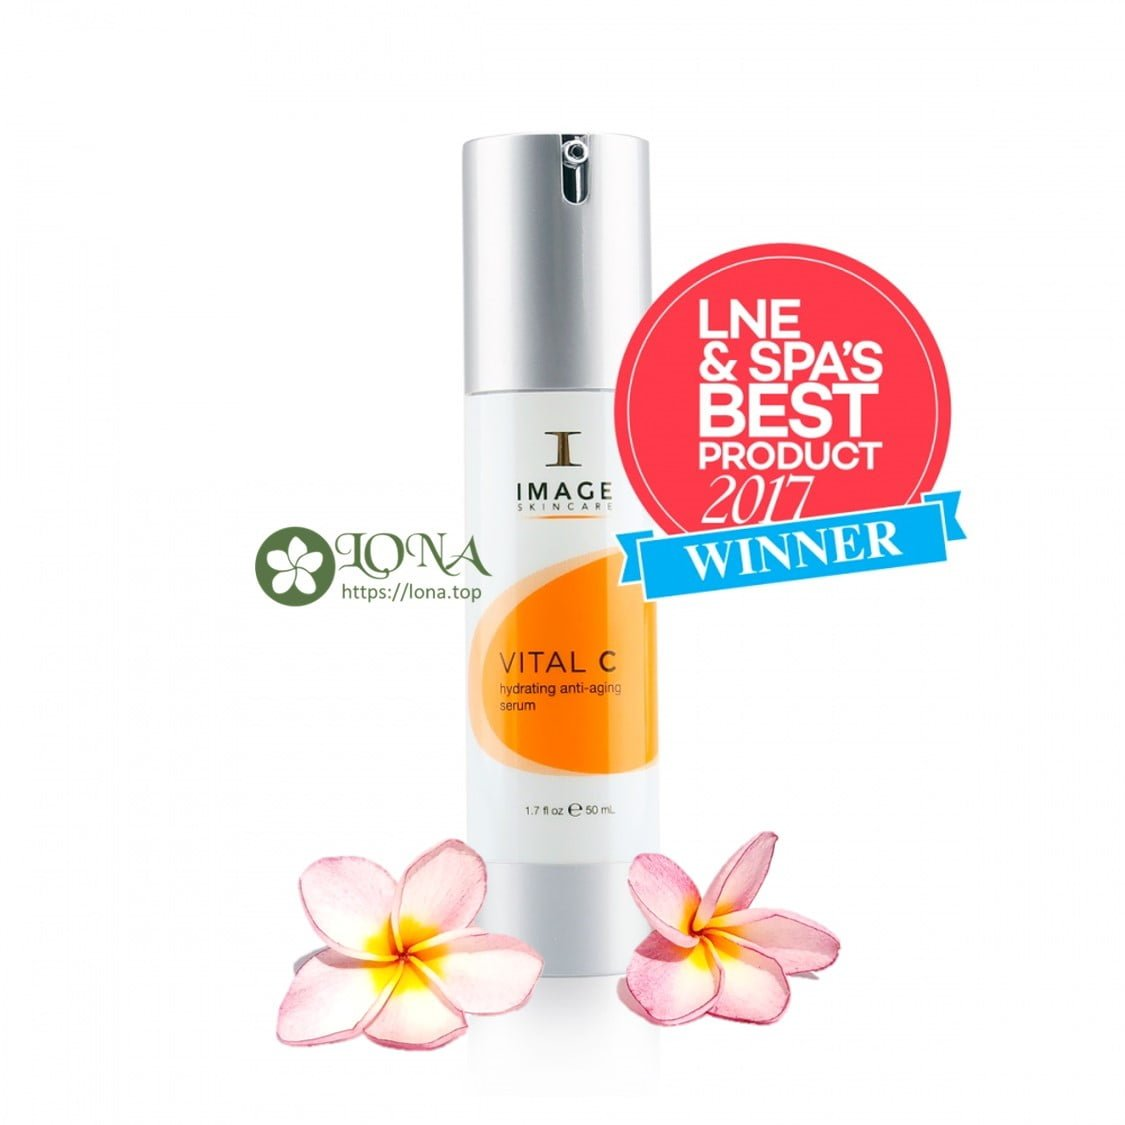 image vital c hydrating anti aging serum